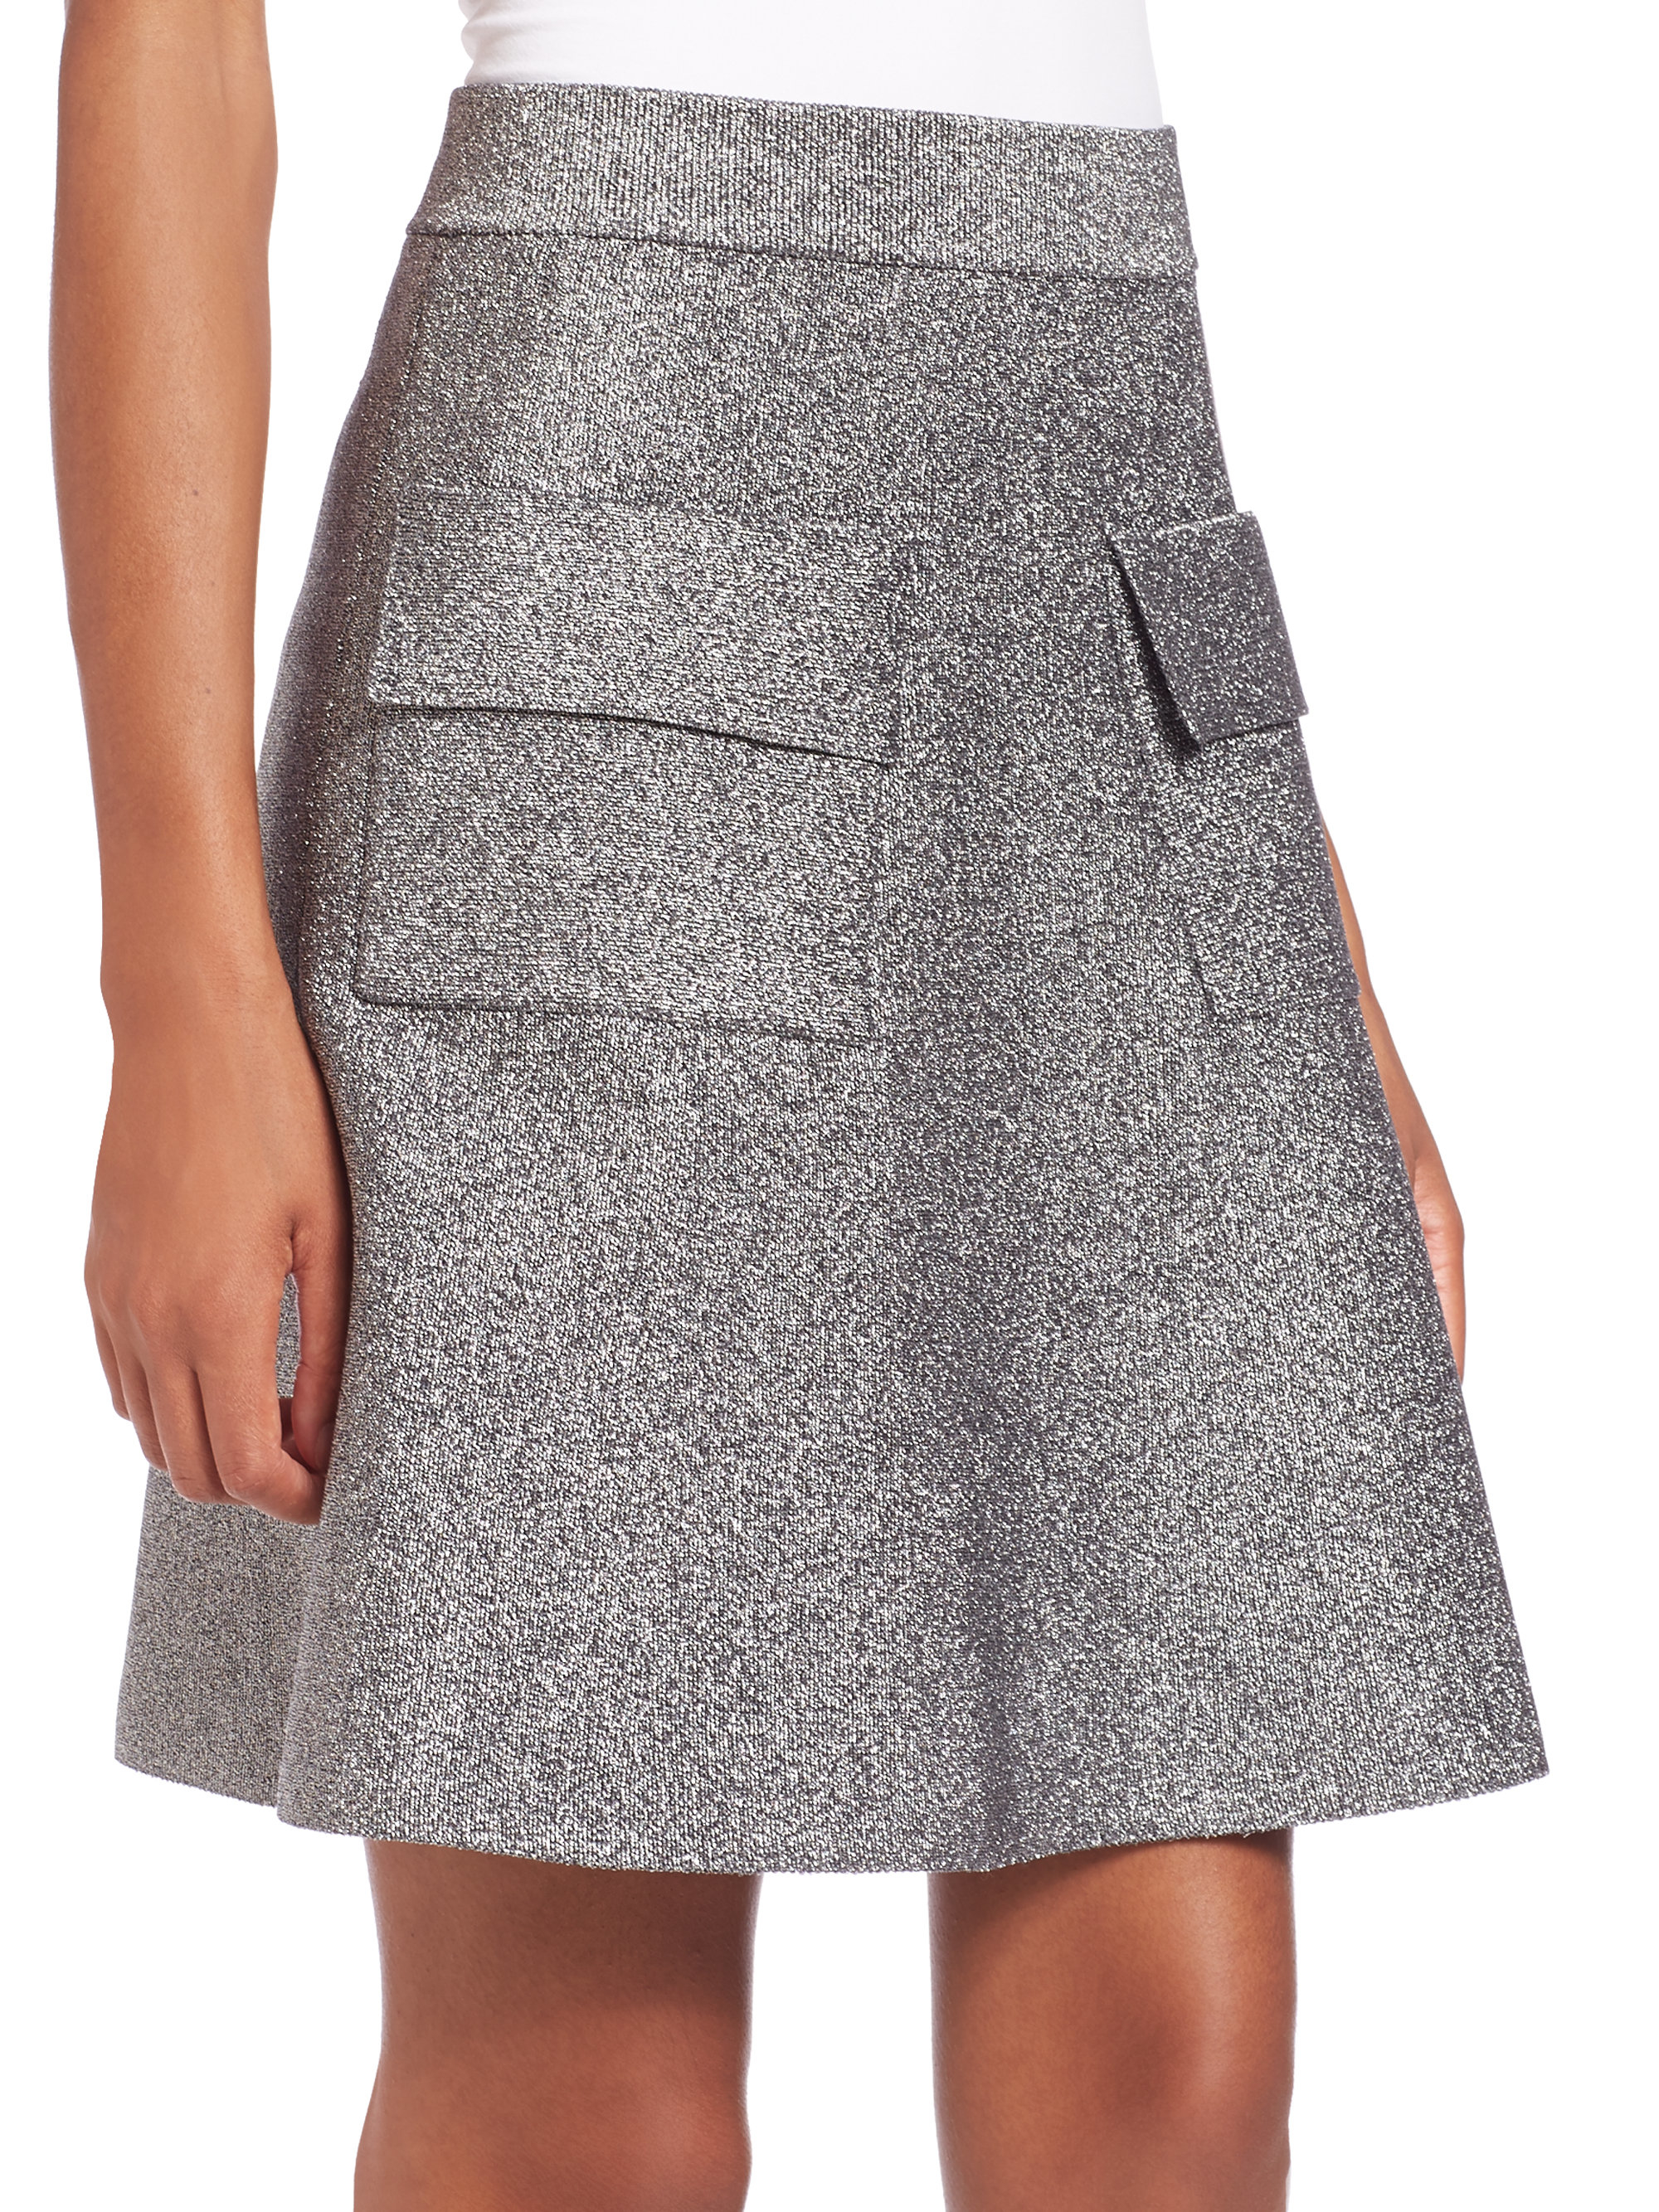 A.l.c. Aaron Pocket A-line Skirt in Gray | Lyst